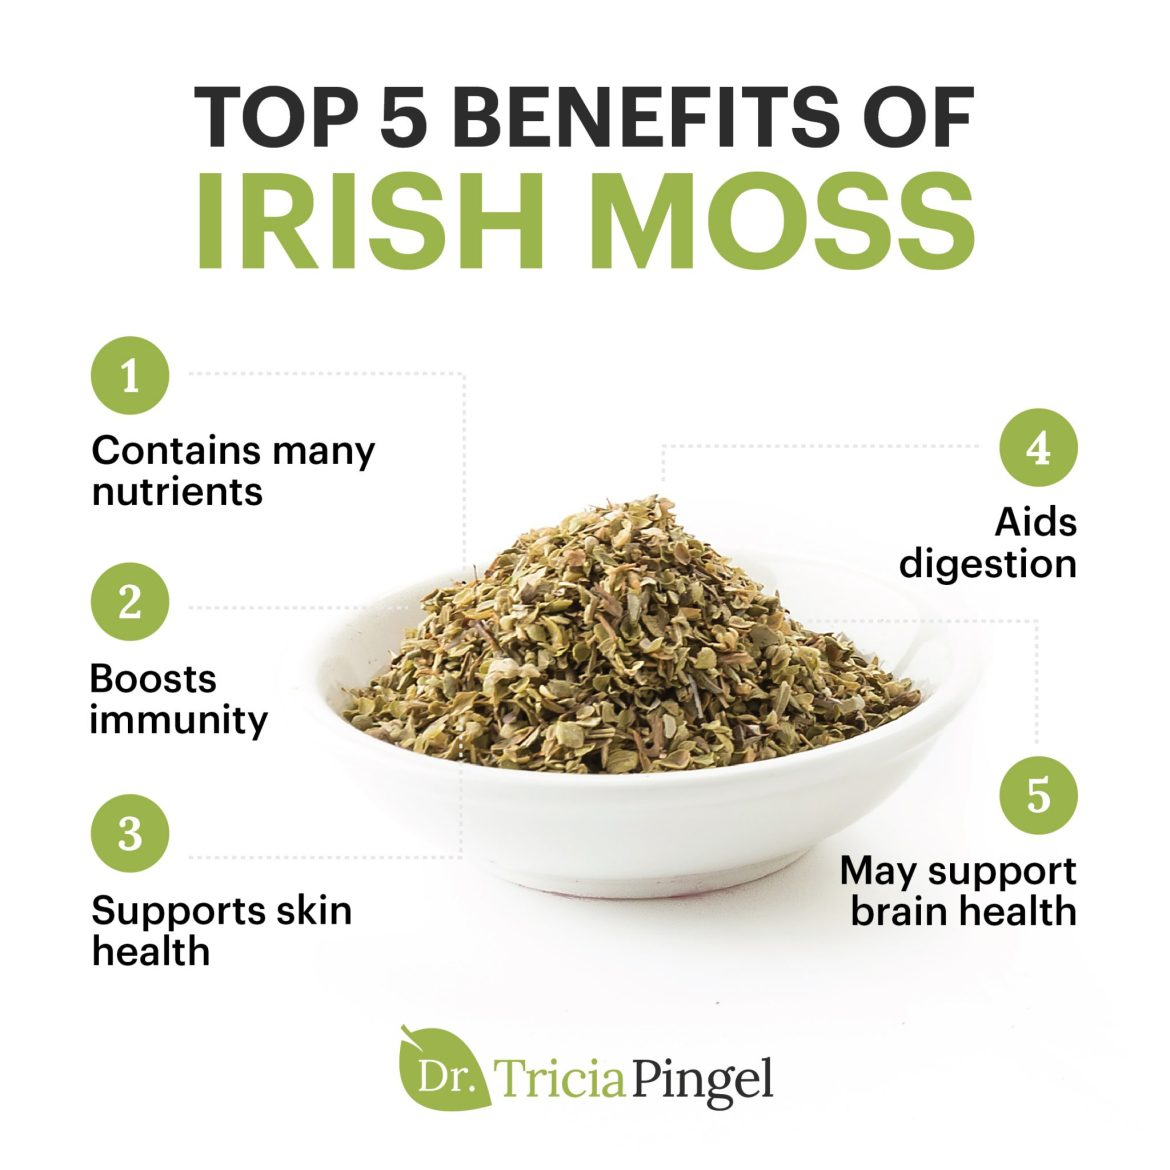 Irish moss benefits - Dr. Pingel